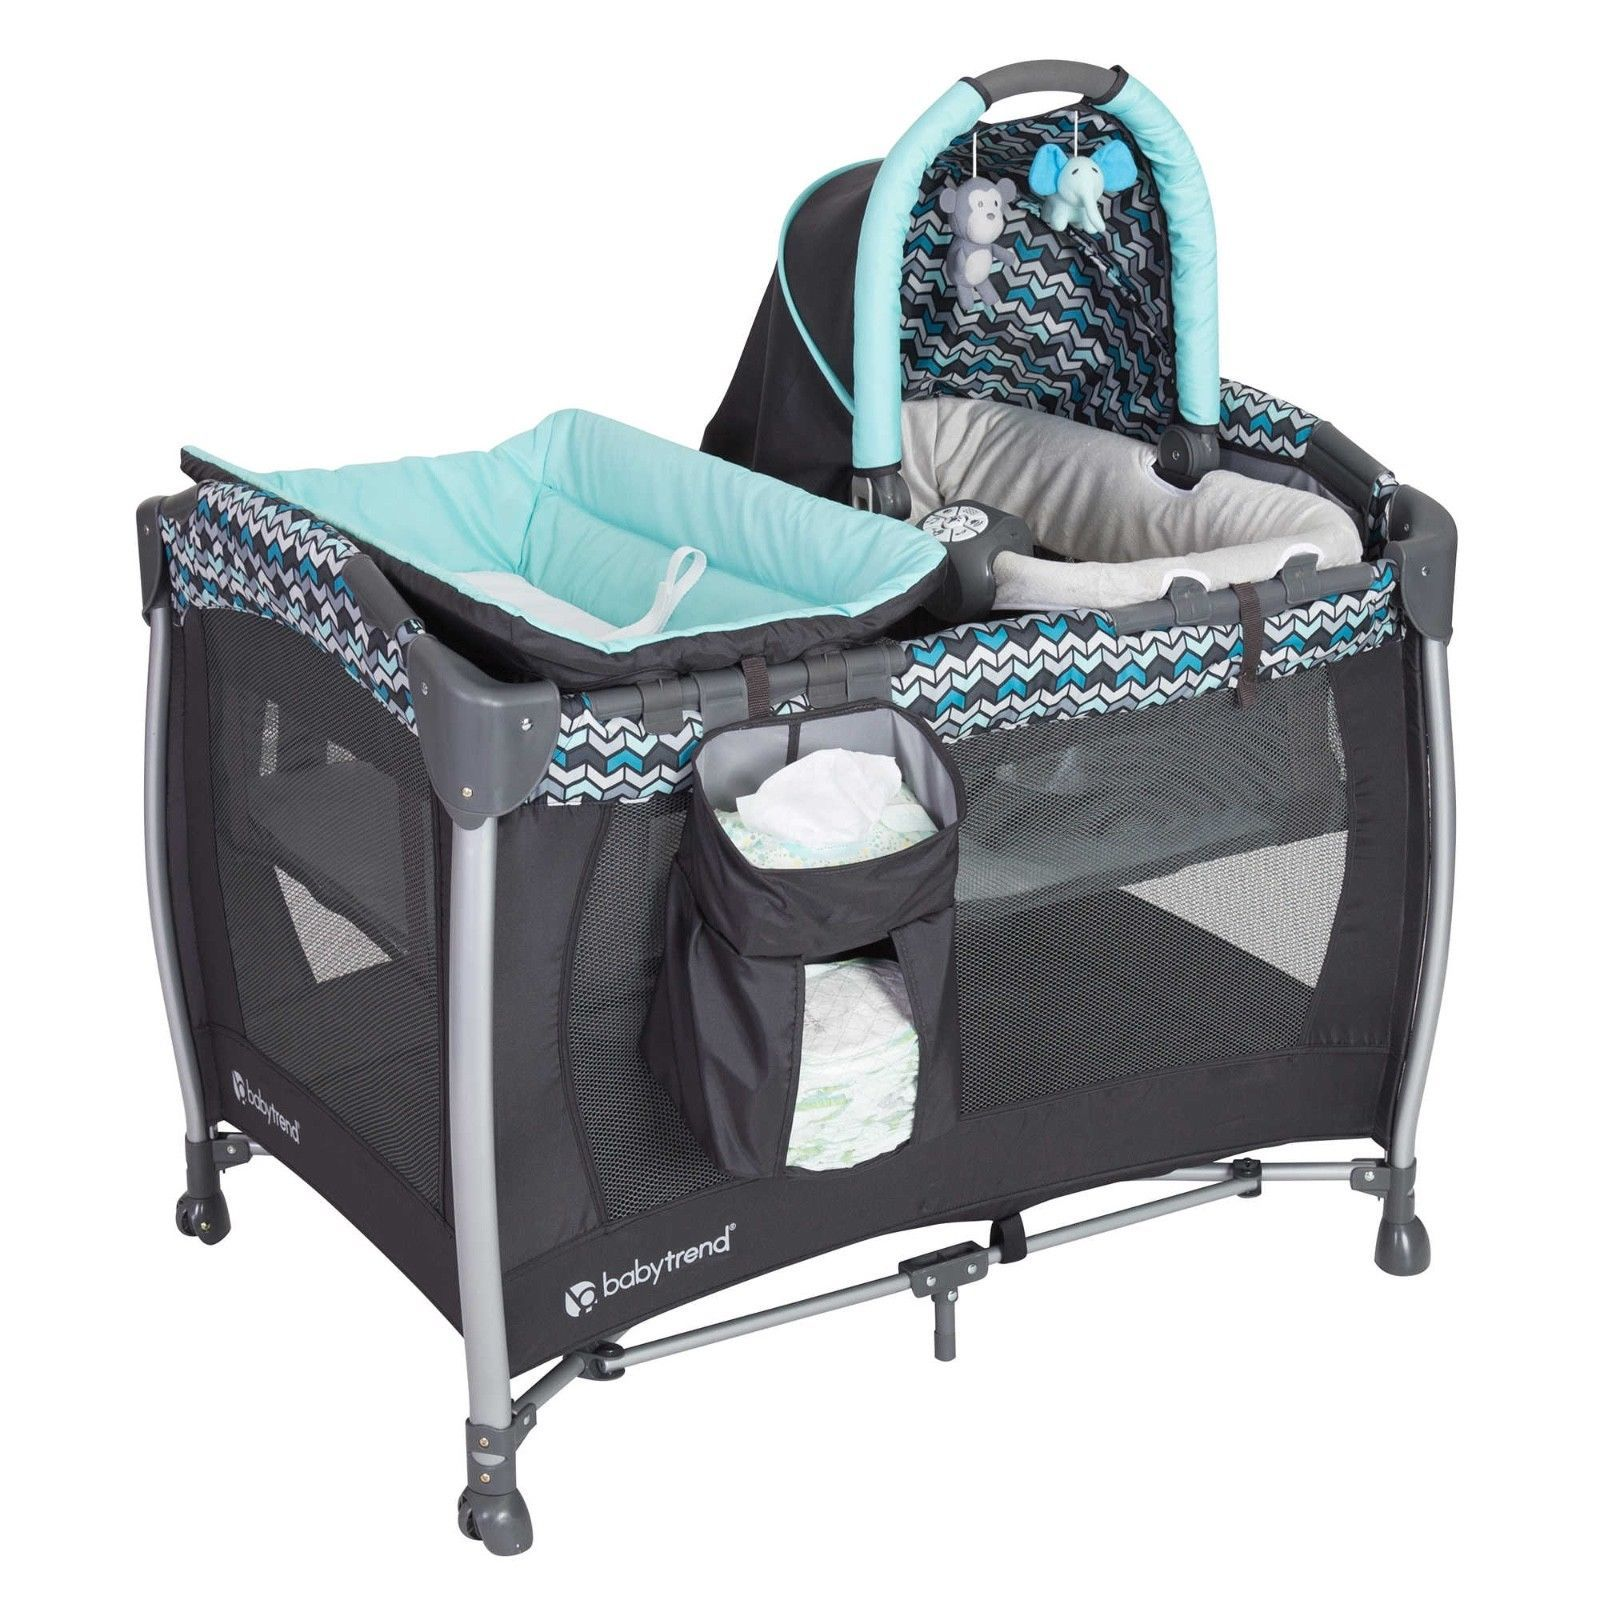 Baby Trend Laguna Resort Elite Nursery Center Playard